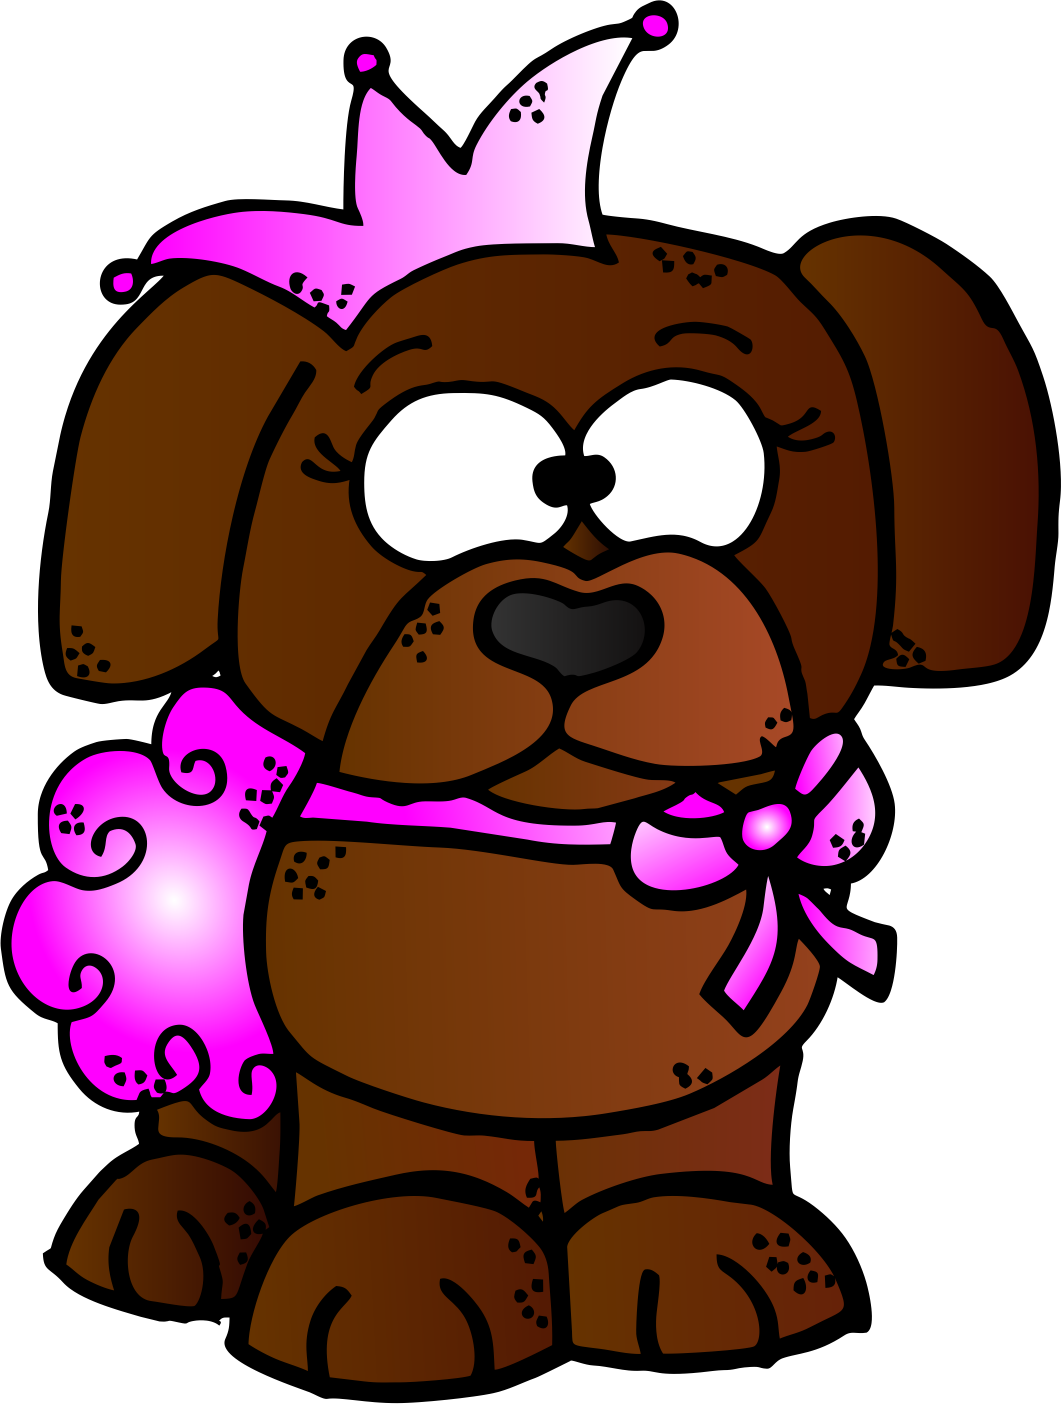 Cute dog clipart free png royalty free WorksheetJunkie: Free Dog Clipart! png royalty free